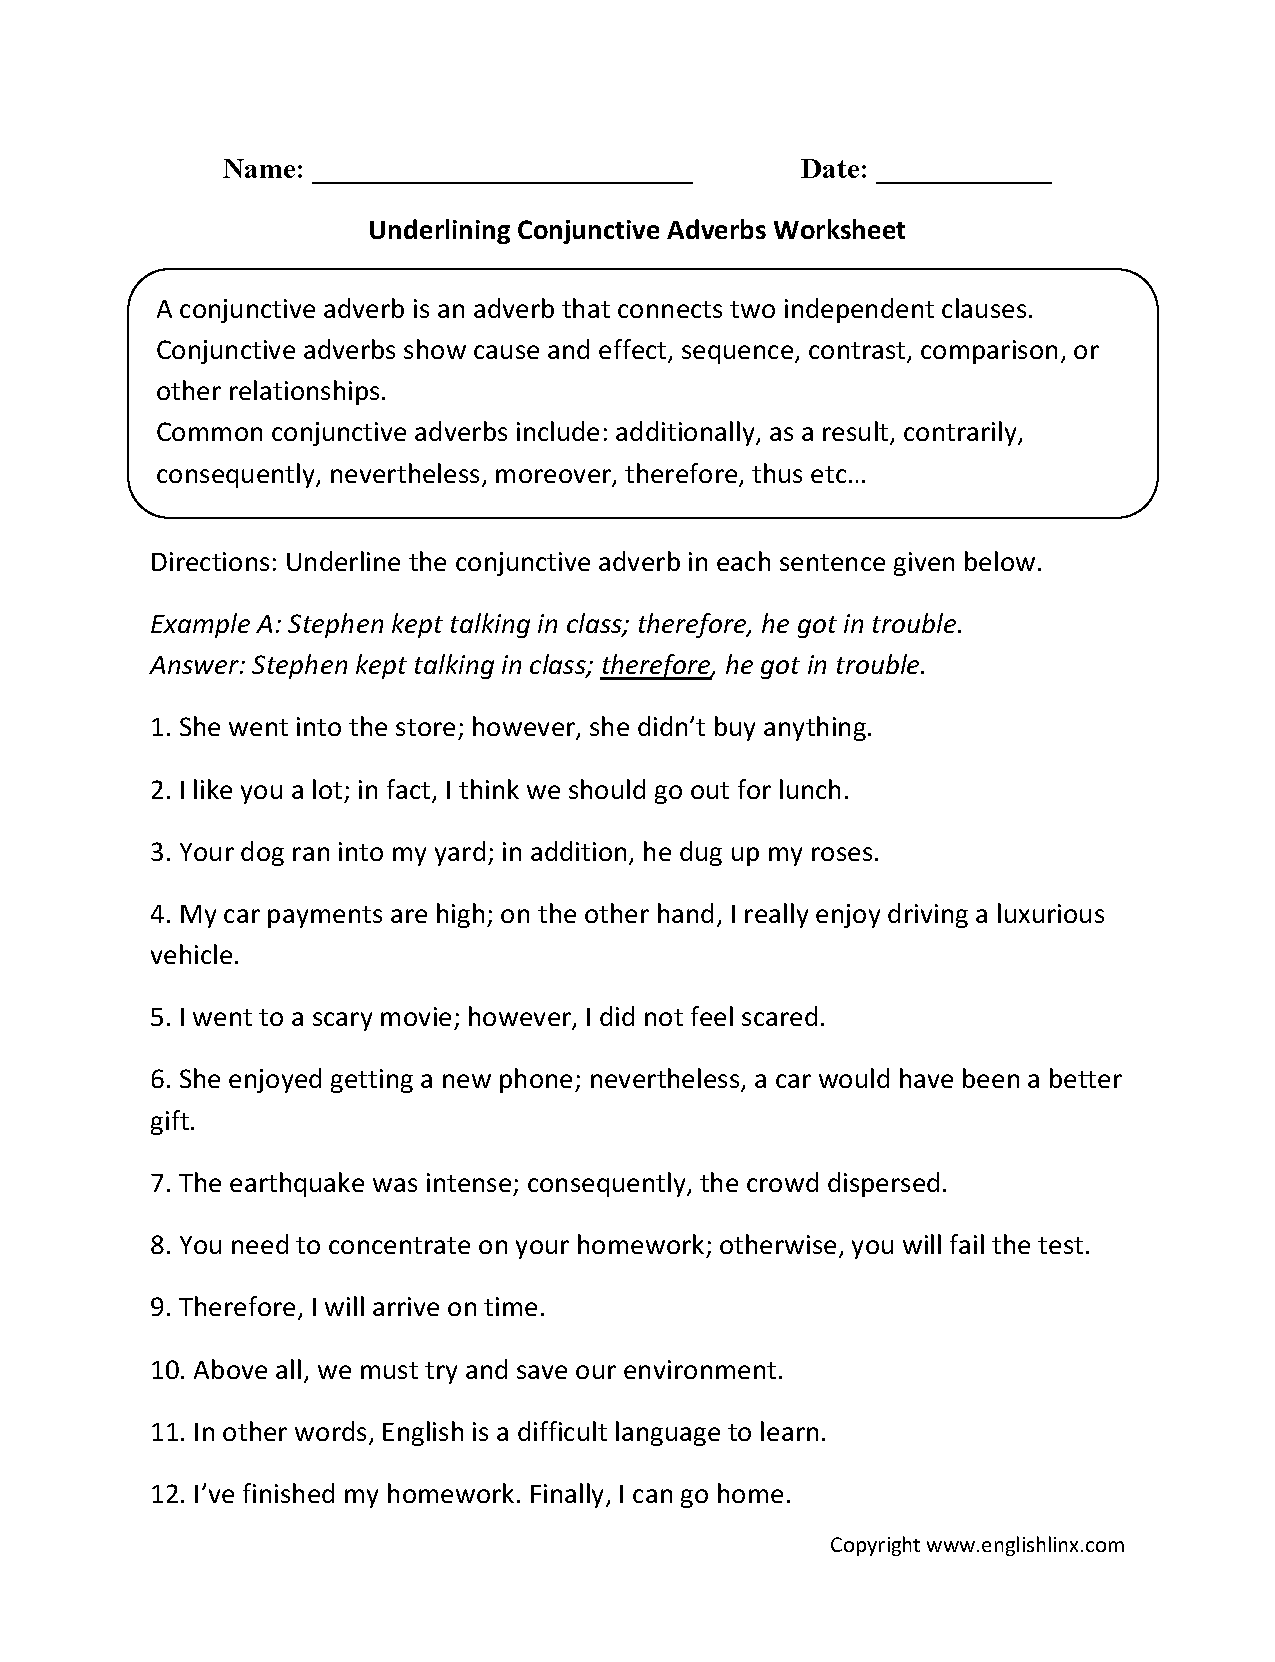 Proatmealus  Terrific Englishlinxcom  Conjunctions Worksheets With Interesting Worksheet With Attractive Math Shapes Worksheets Also First Grade Sight Word Worksheets Free In Addition Solving Equations Puzzle Worksheet And Solving Equations Using Substitution Worksheet As Well As Simple Math Equations Worksheets Additionally Free Study Skills Worksheets From Englishlinxcom With Proatmealus  Interesting Englishlinxcom  Conjunctions Worksheets With Attractive Worksheet And Terrific Math Shapes Worksheets Also First Grade Sight Word Worksheets Free In Addition Solving Equations Puzzle Worksheet From Englishlinxcom